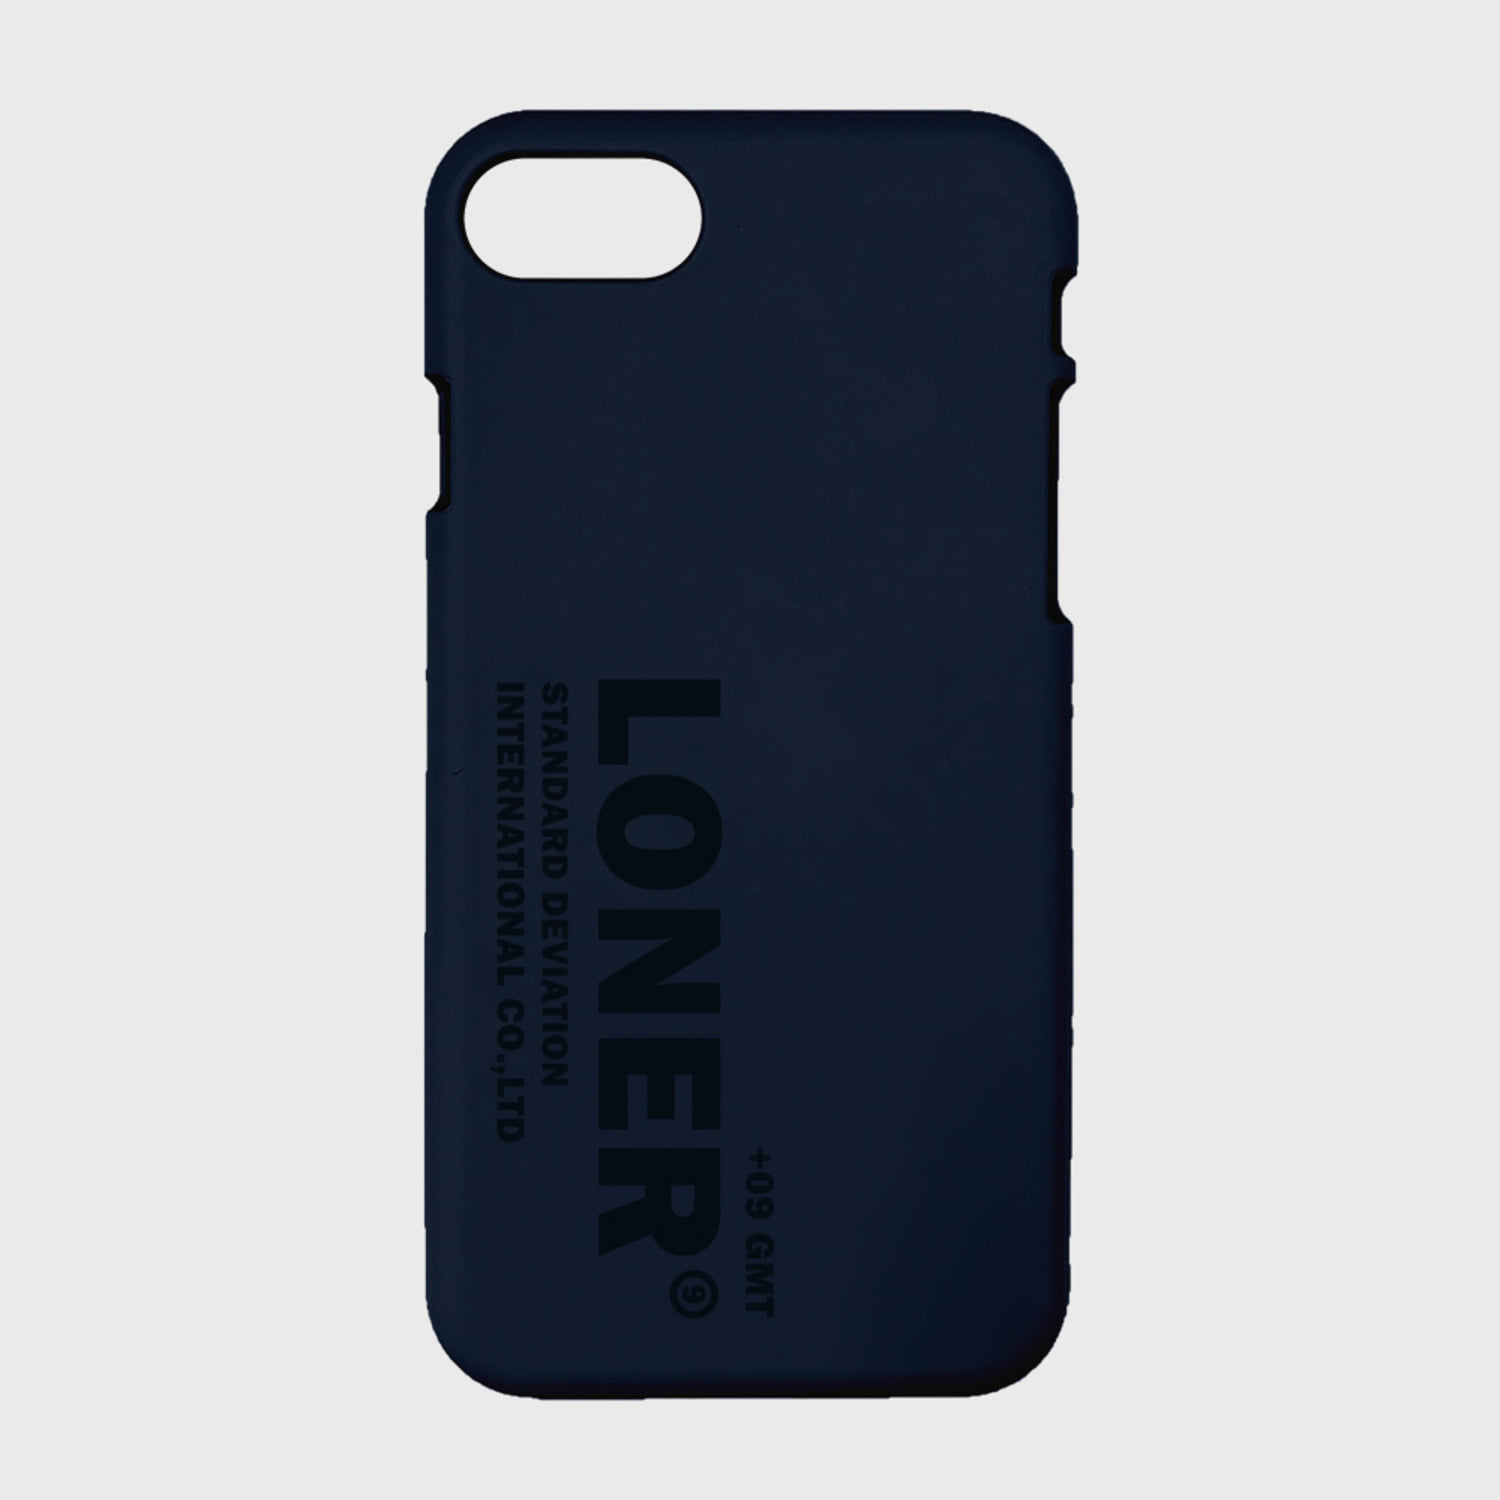 [L]Column gmt case-navy(color jelly)(기간한정 07.03 - 07.09)